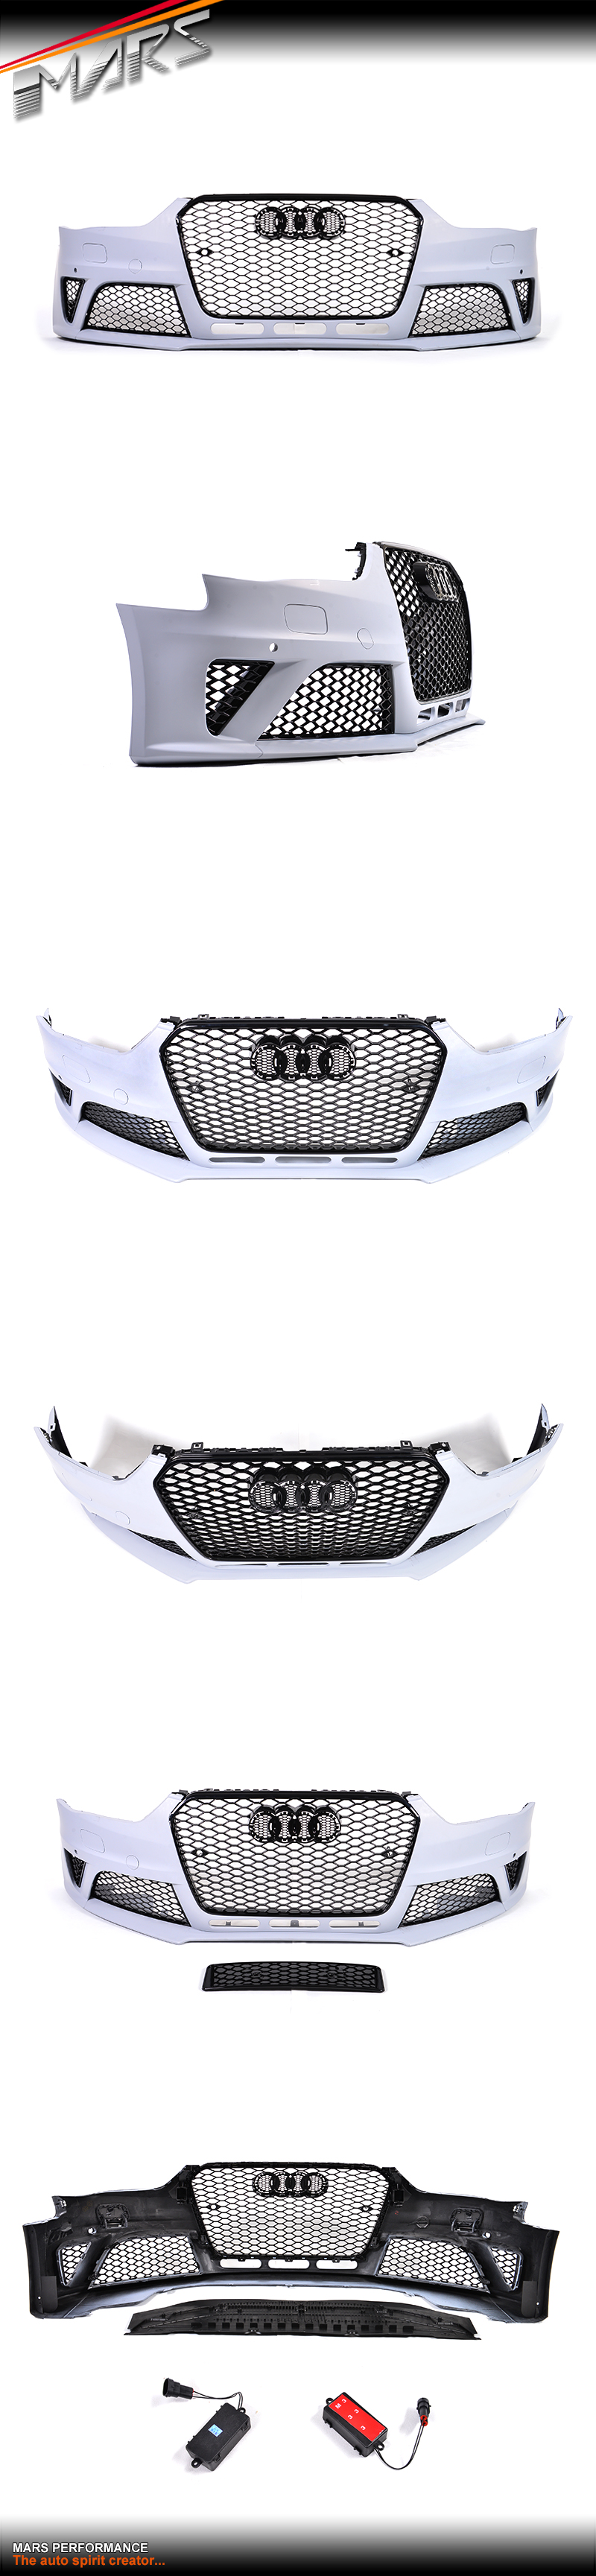 RS4 Style Front Bumper Bar with Grille for AUDI A4 S4 B8 12